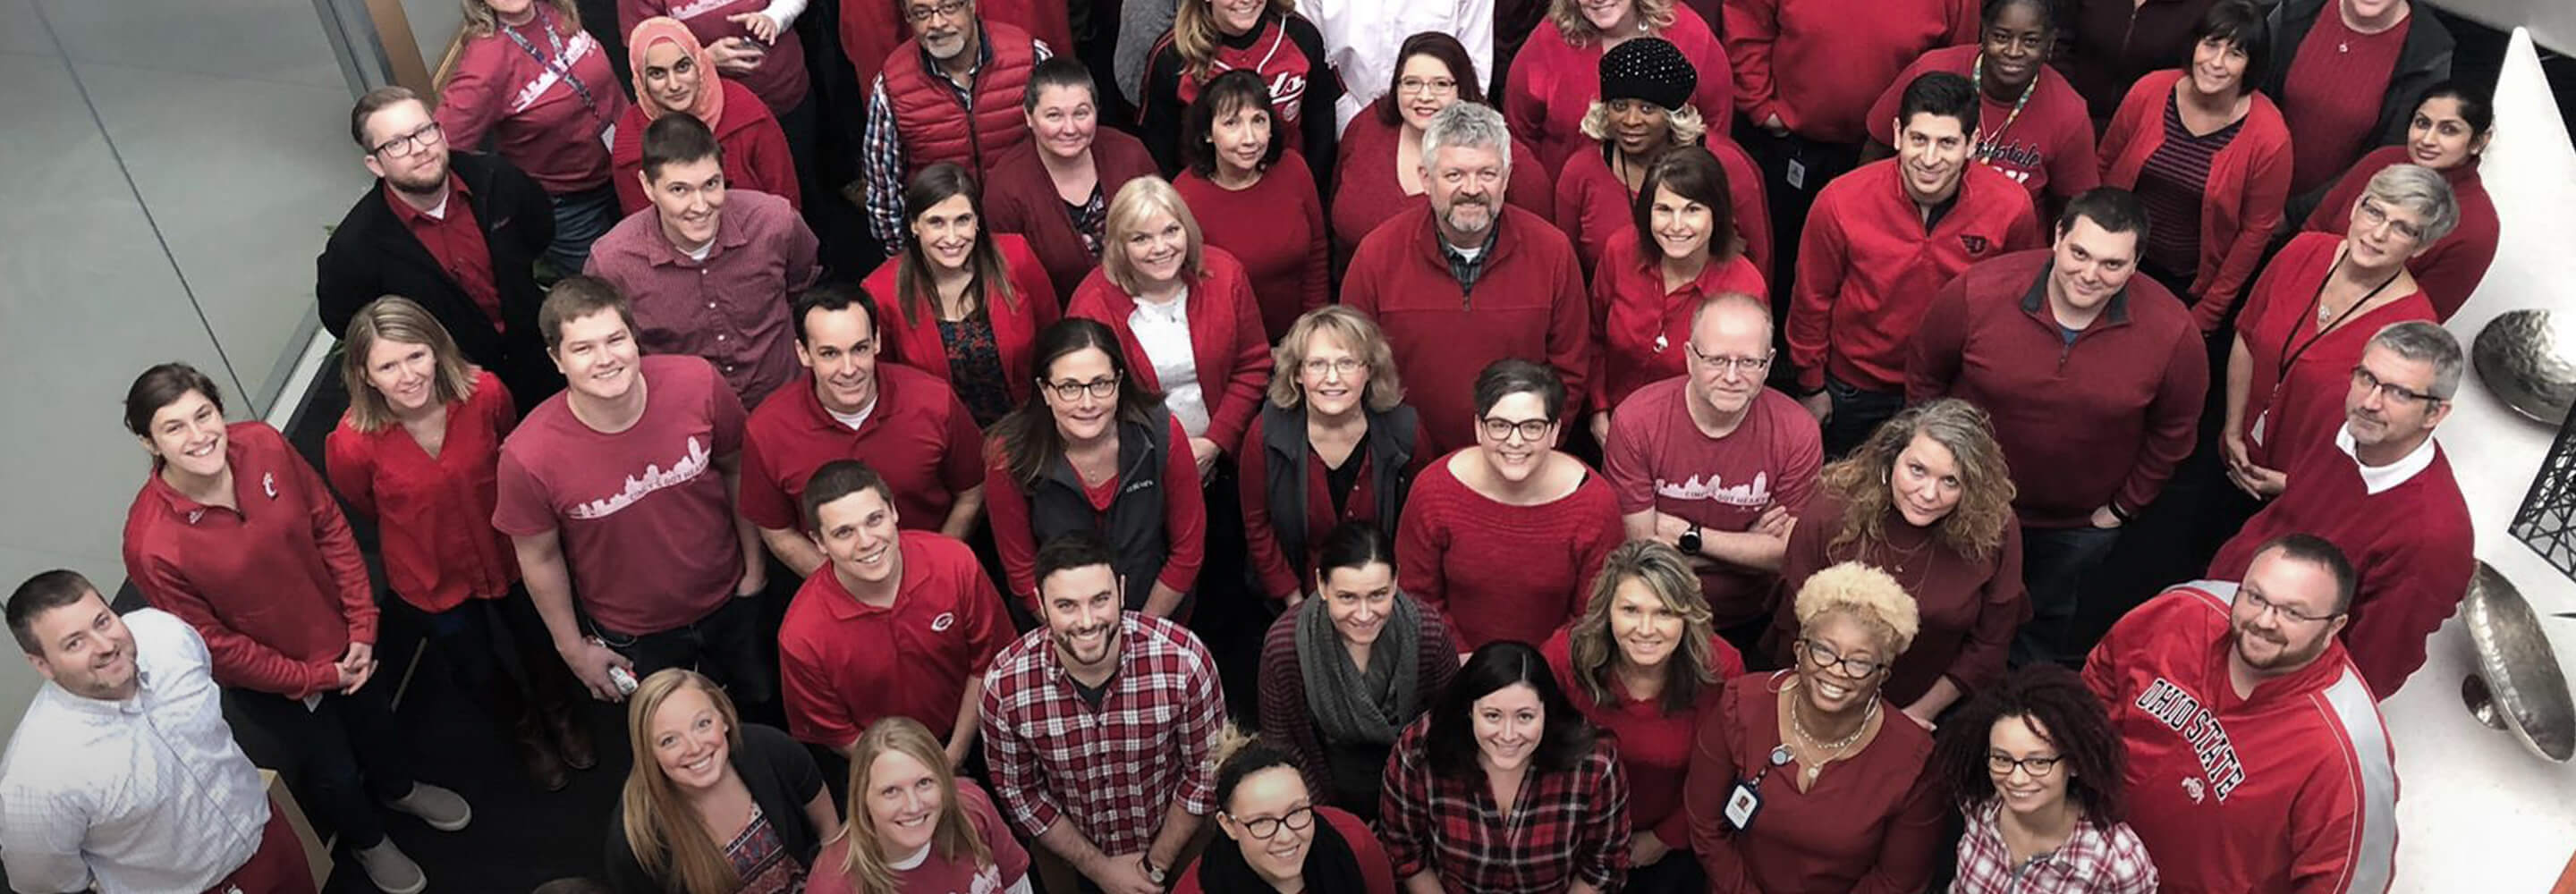 Wear Red Day in support of American Heart Association